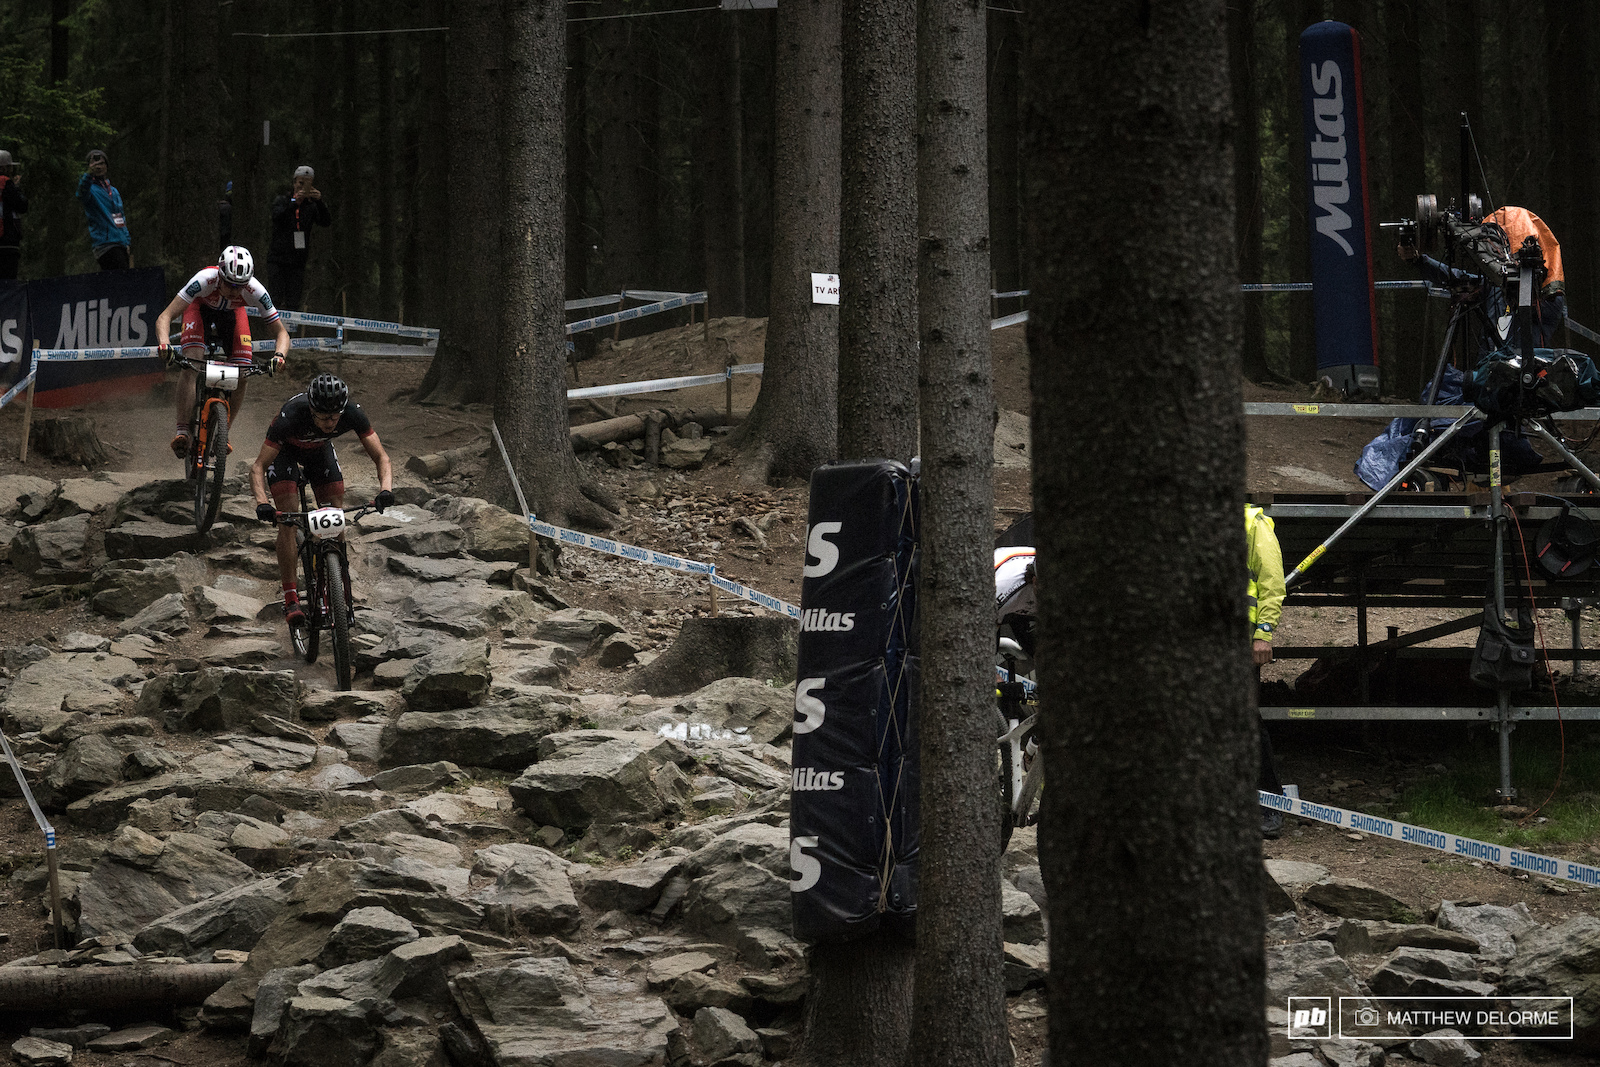 Sebastian Fini Carstensen leads Fagerhaug early on through Mitas Choice.